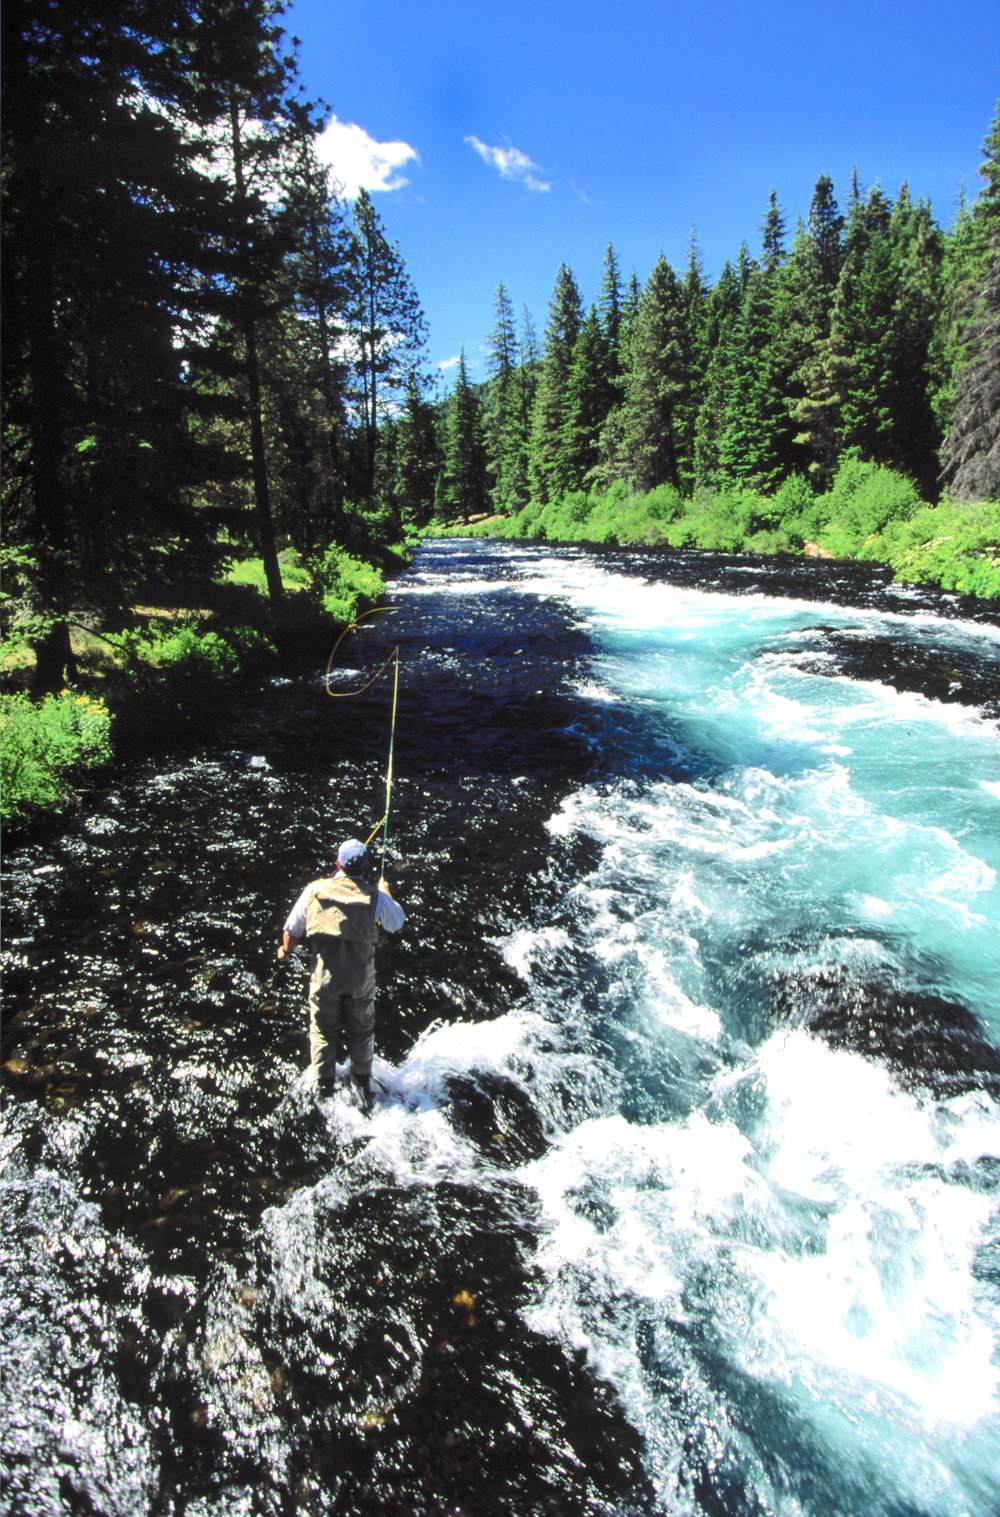 Fly fishing on the Metolius River in Eastern Oregon